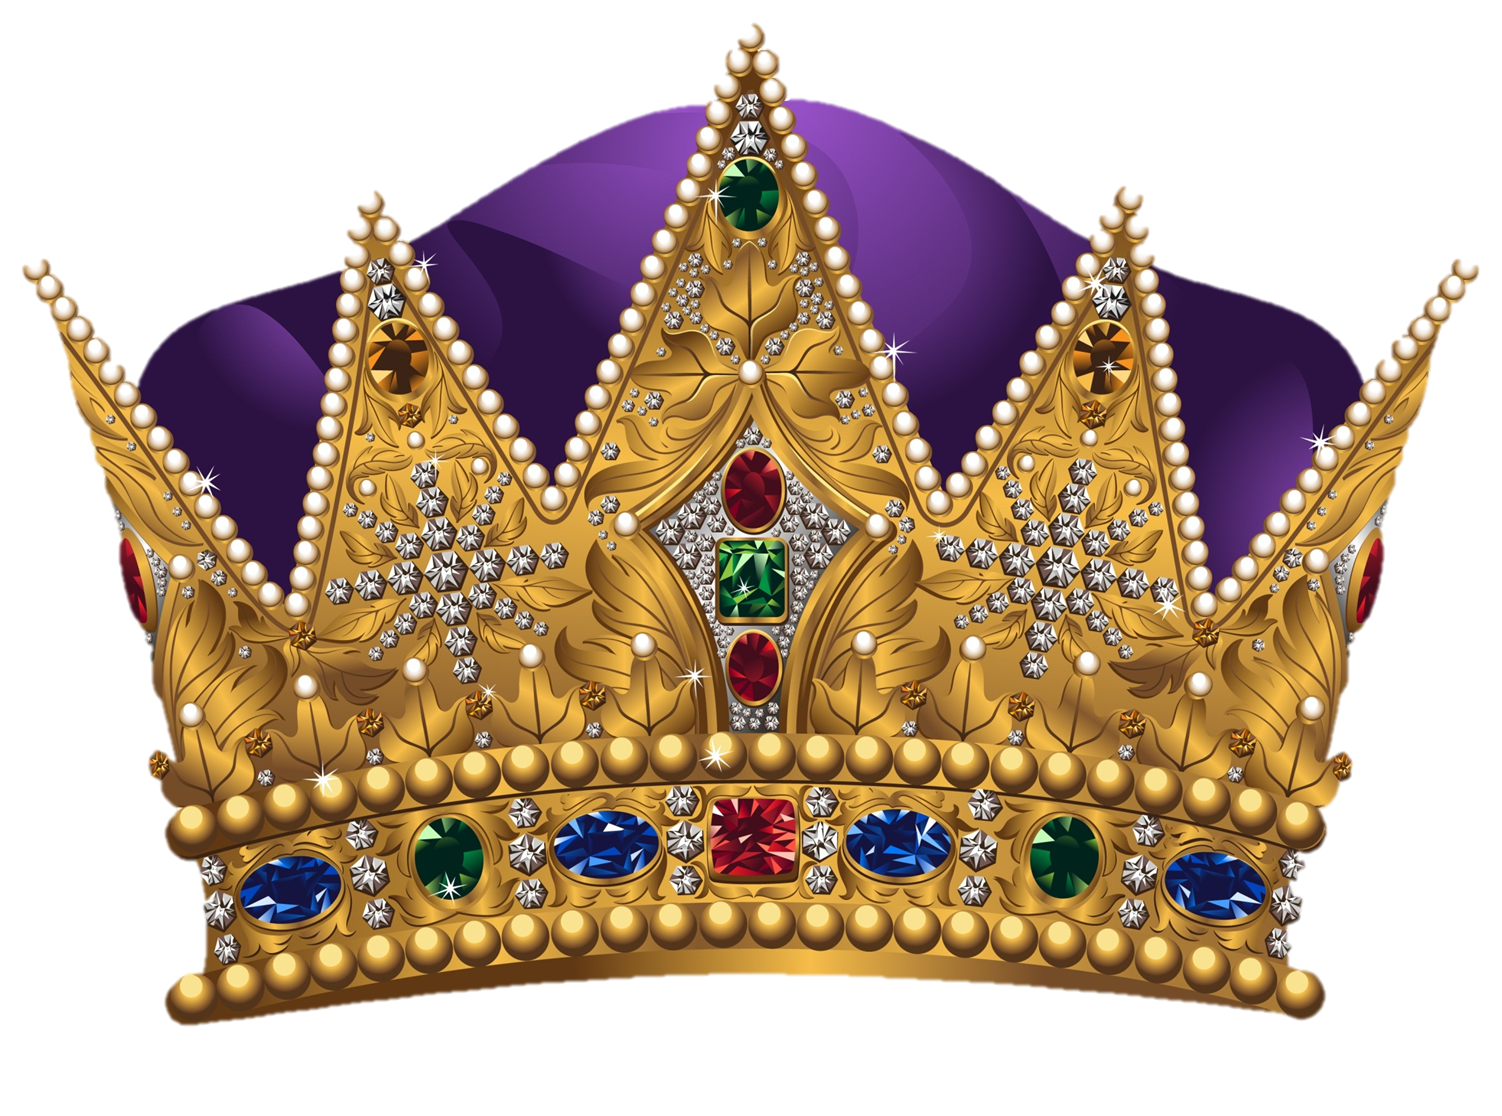 Bling crown clipart clipart royalty free stock Crown Transparent PNG Pictures - Free Icons and PNG Backgrounds clipart royalty free stock